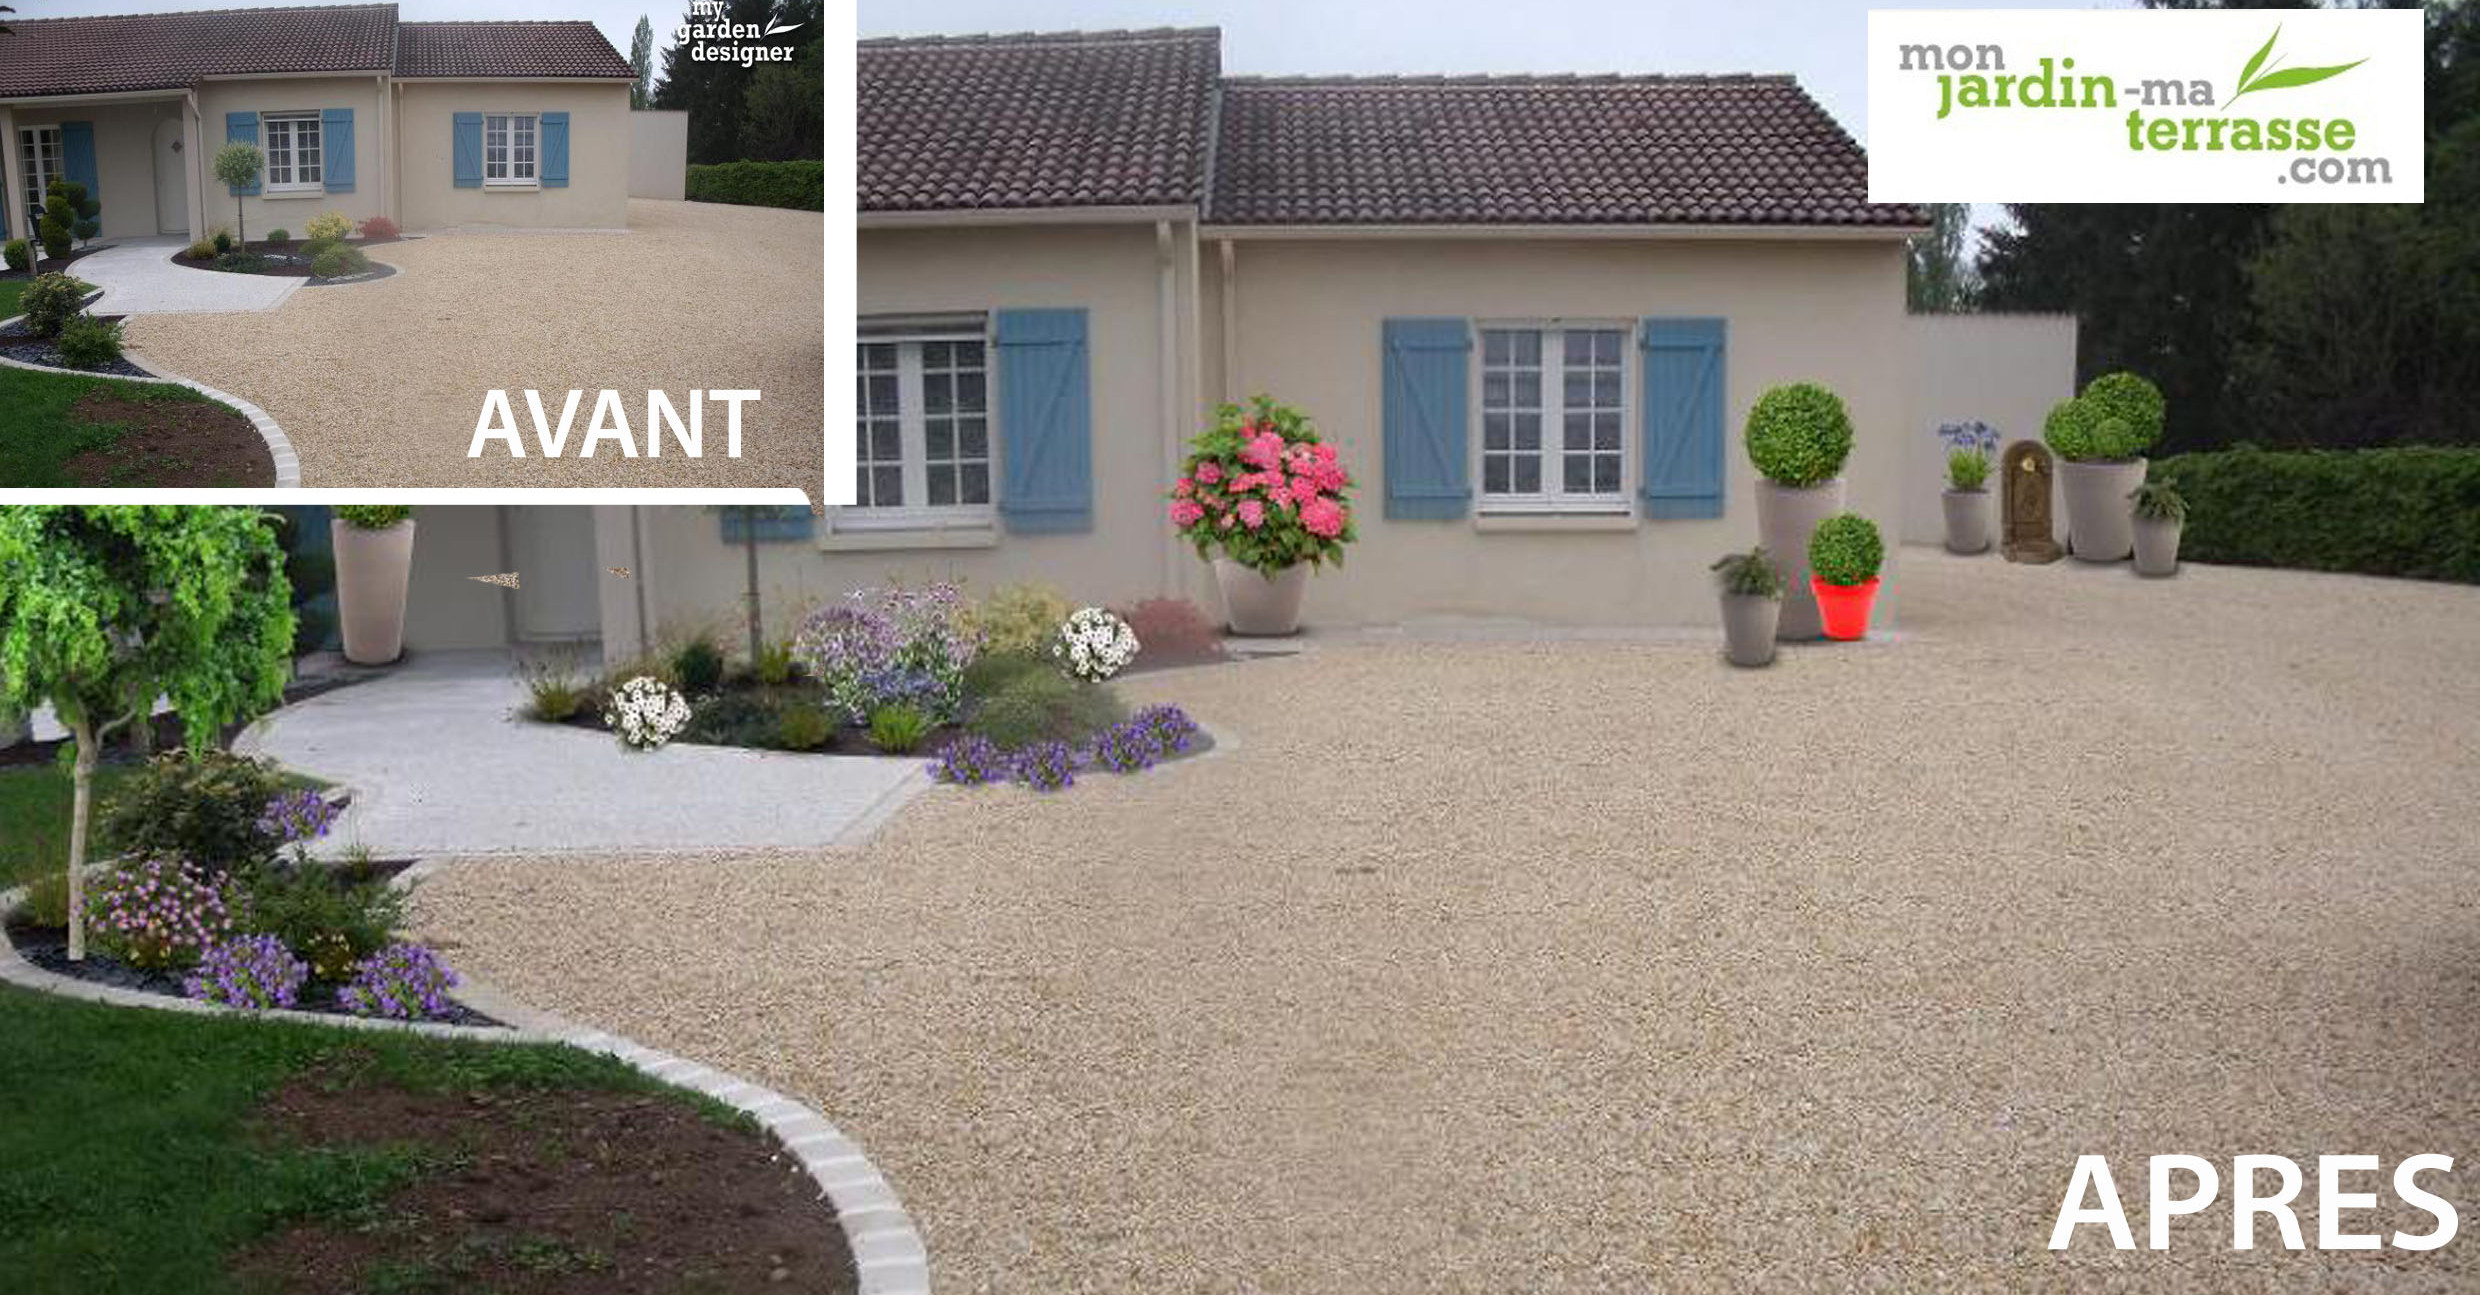 Id e d am nagement d une entr e de maison monjardin for Amenagement jardin devant maison